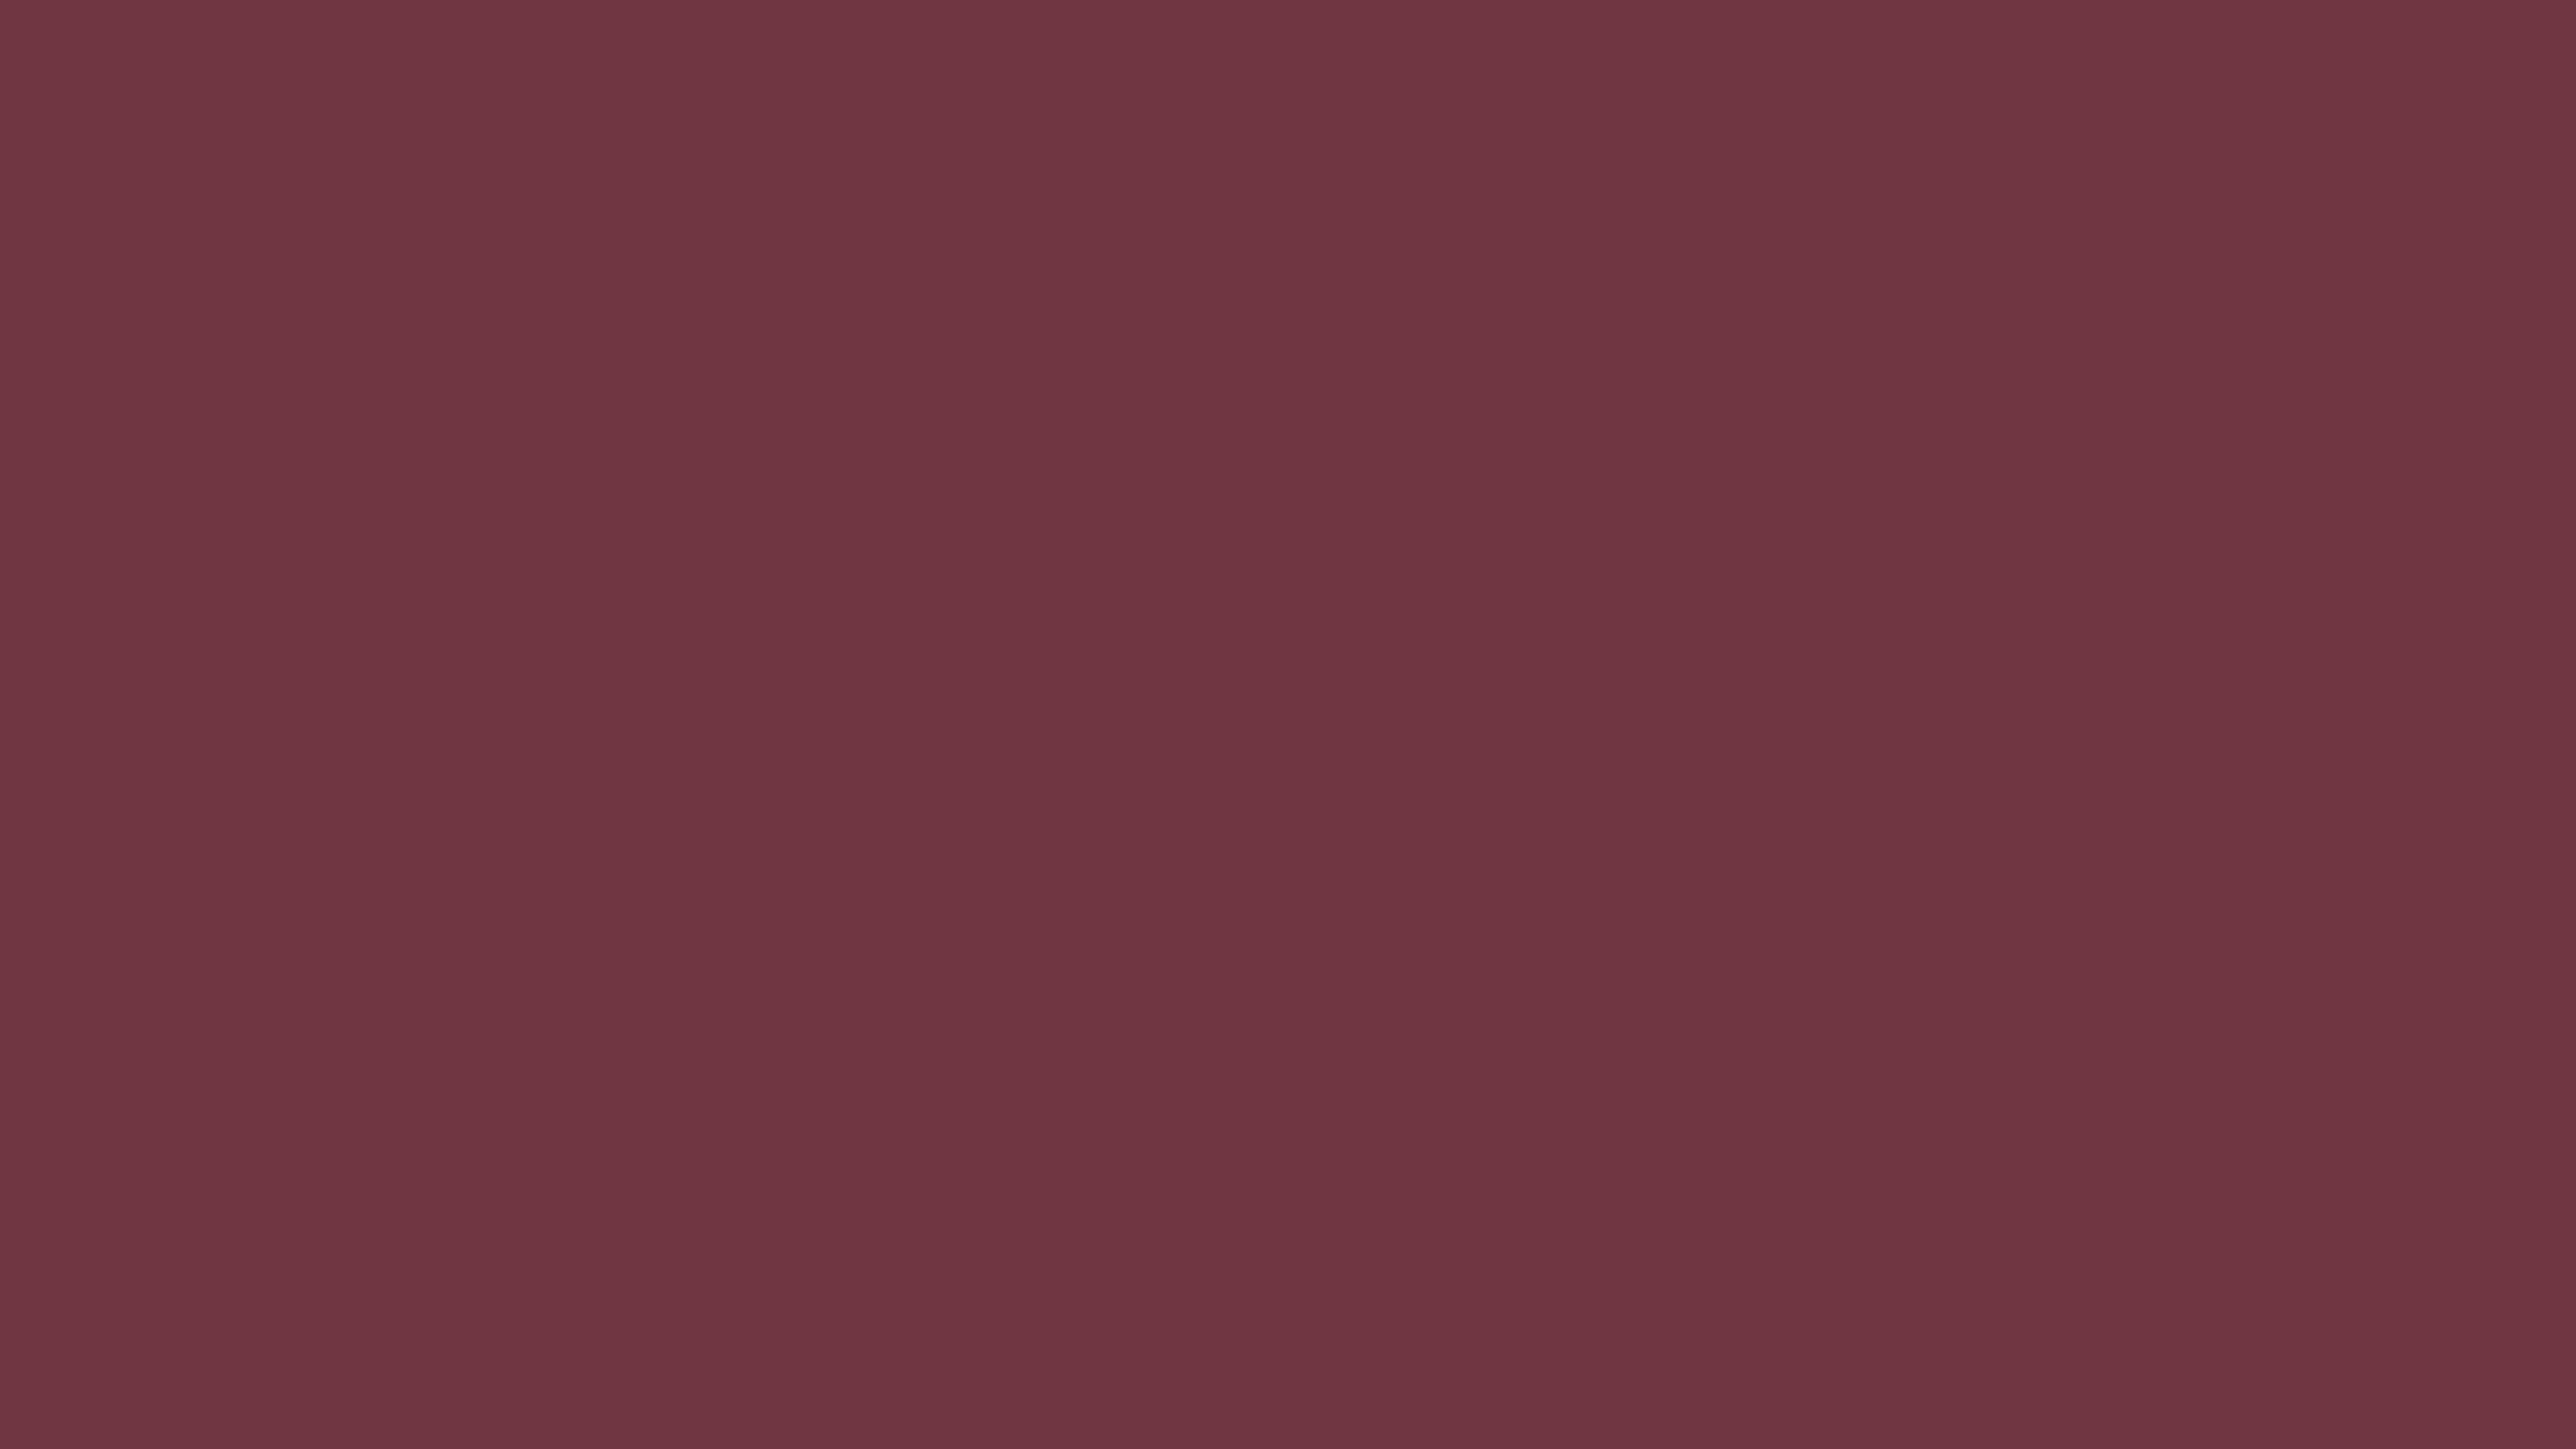 Catawba Solid Color Background Wallpaper 5120x2880 340x220